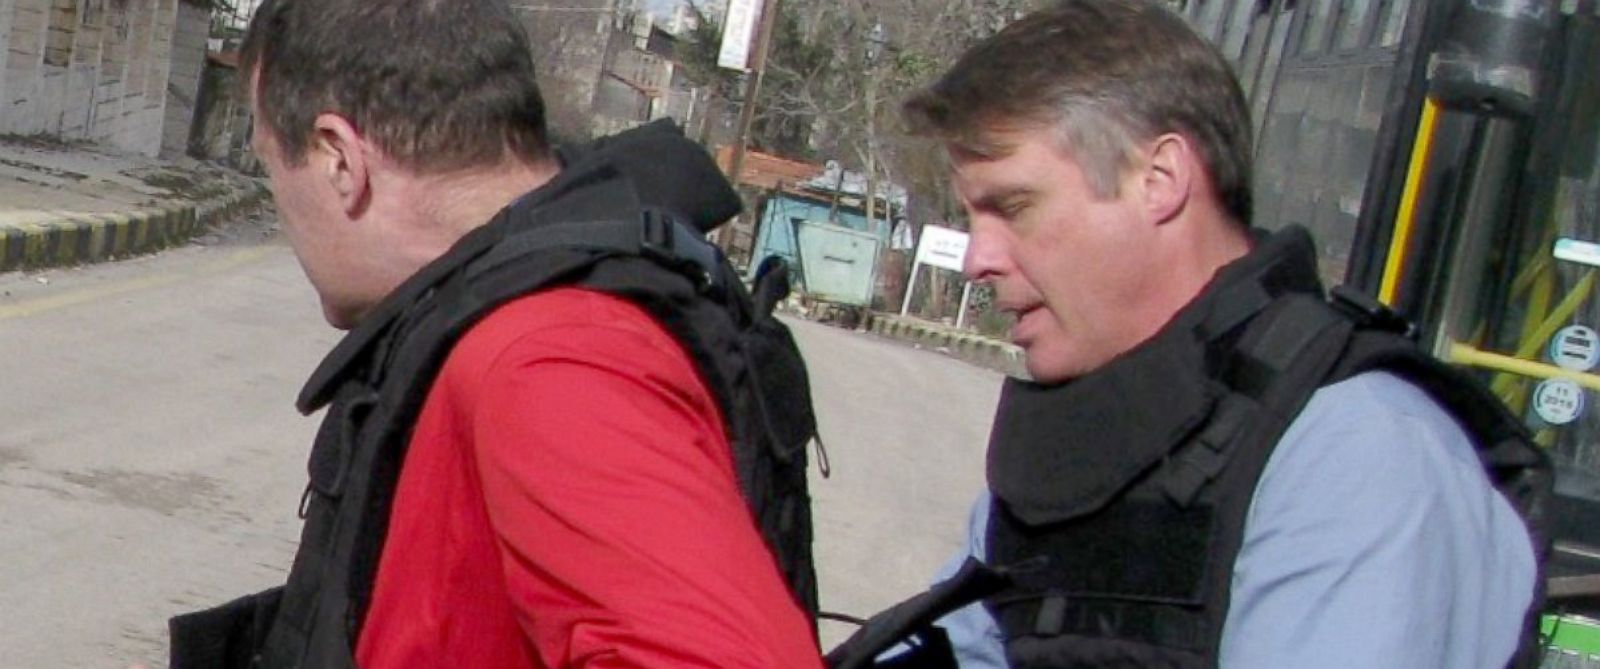 PHOTO: From the outskirts of a village, Terry Moran helps cameraman Max Karmen with his vest.